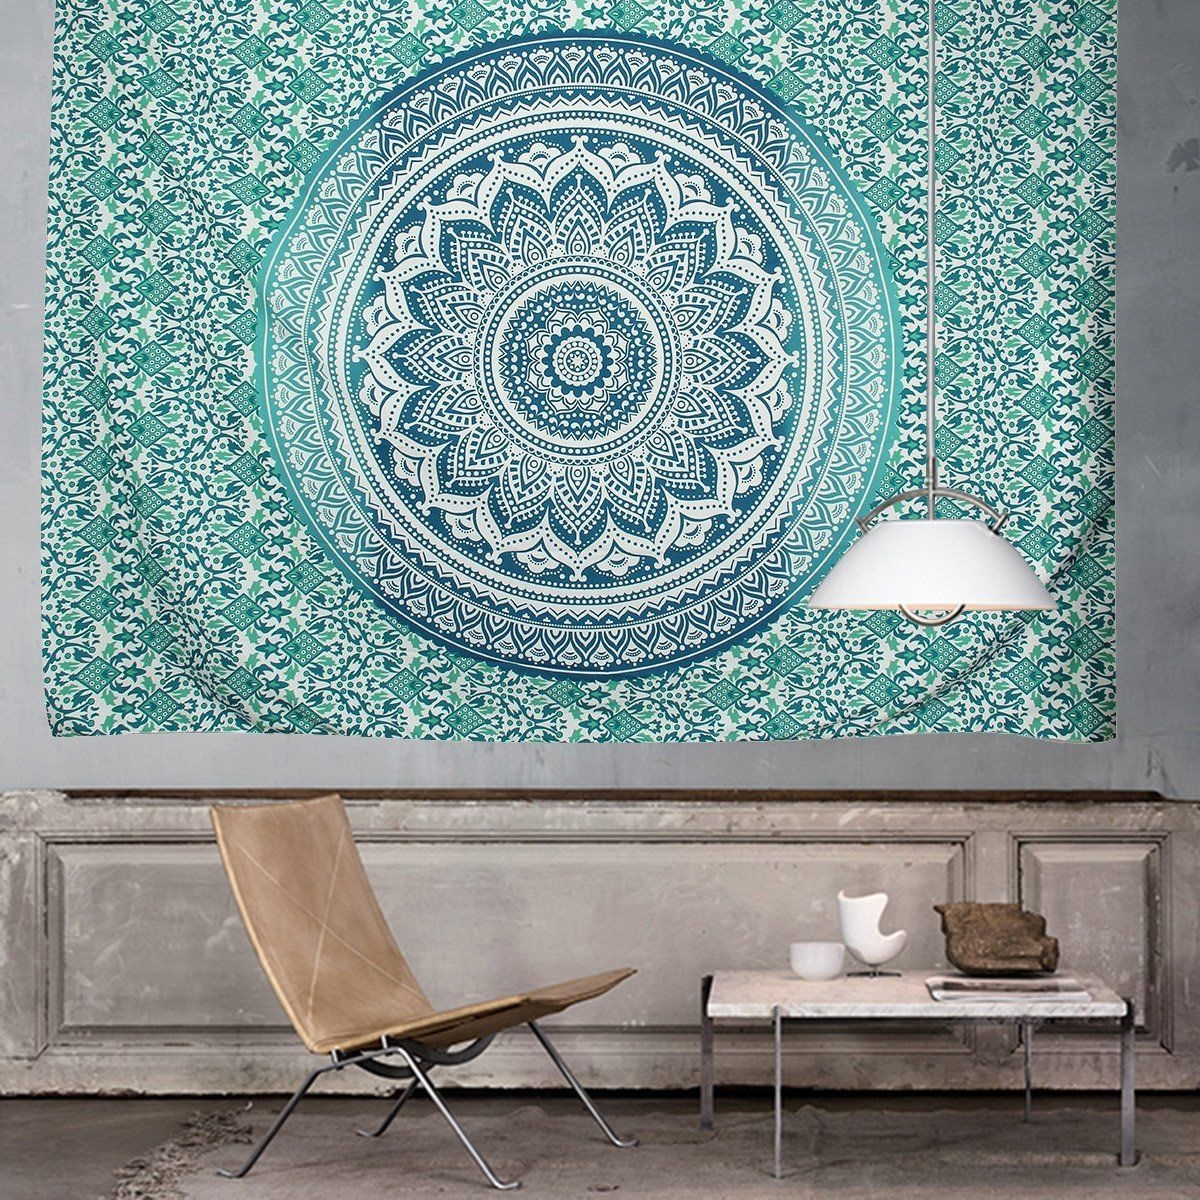 Ombre Indian Wall Hanging Hippie Mandala Tapestry Bohemian Inside 2018 Elephant Fabric Wall Art (Gallery 2 of 15)